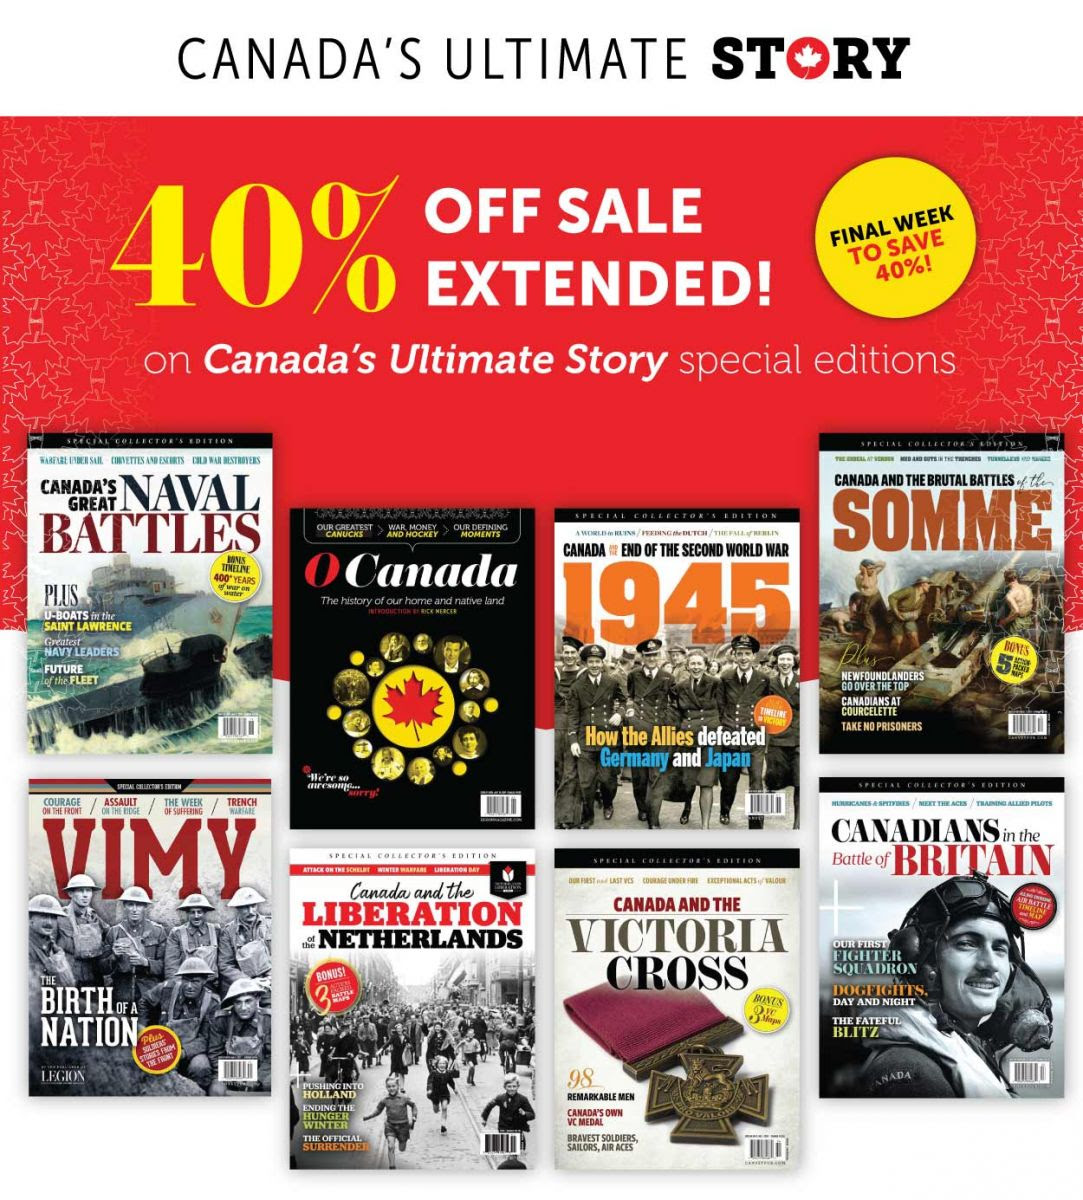 40% sale extended!